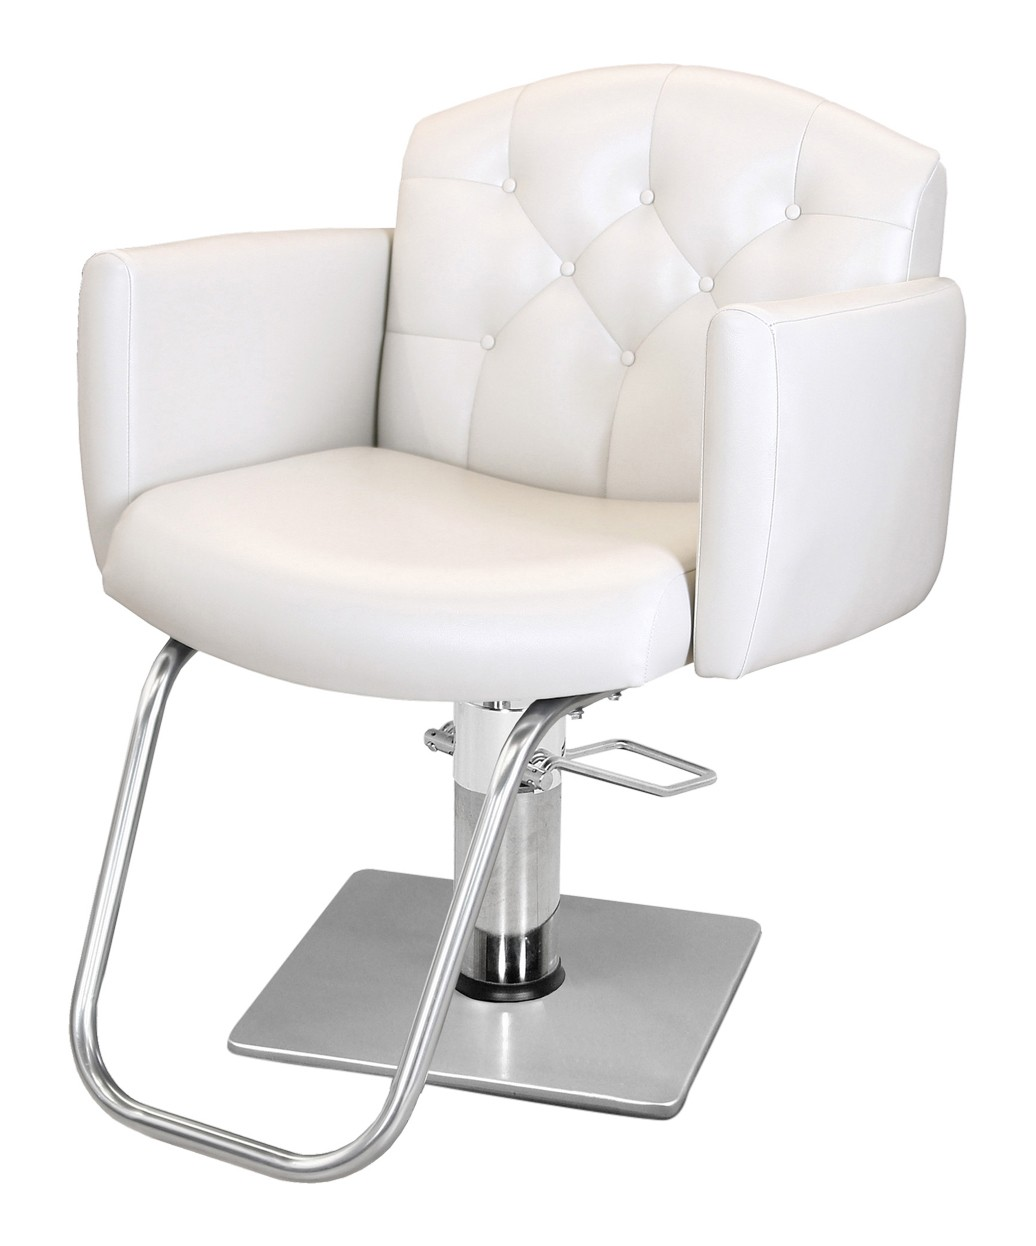 7100X Ashton Styling Chair Square Base